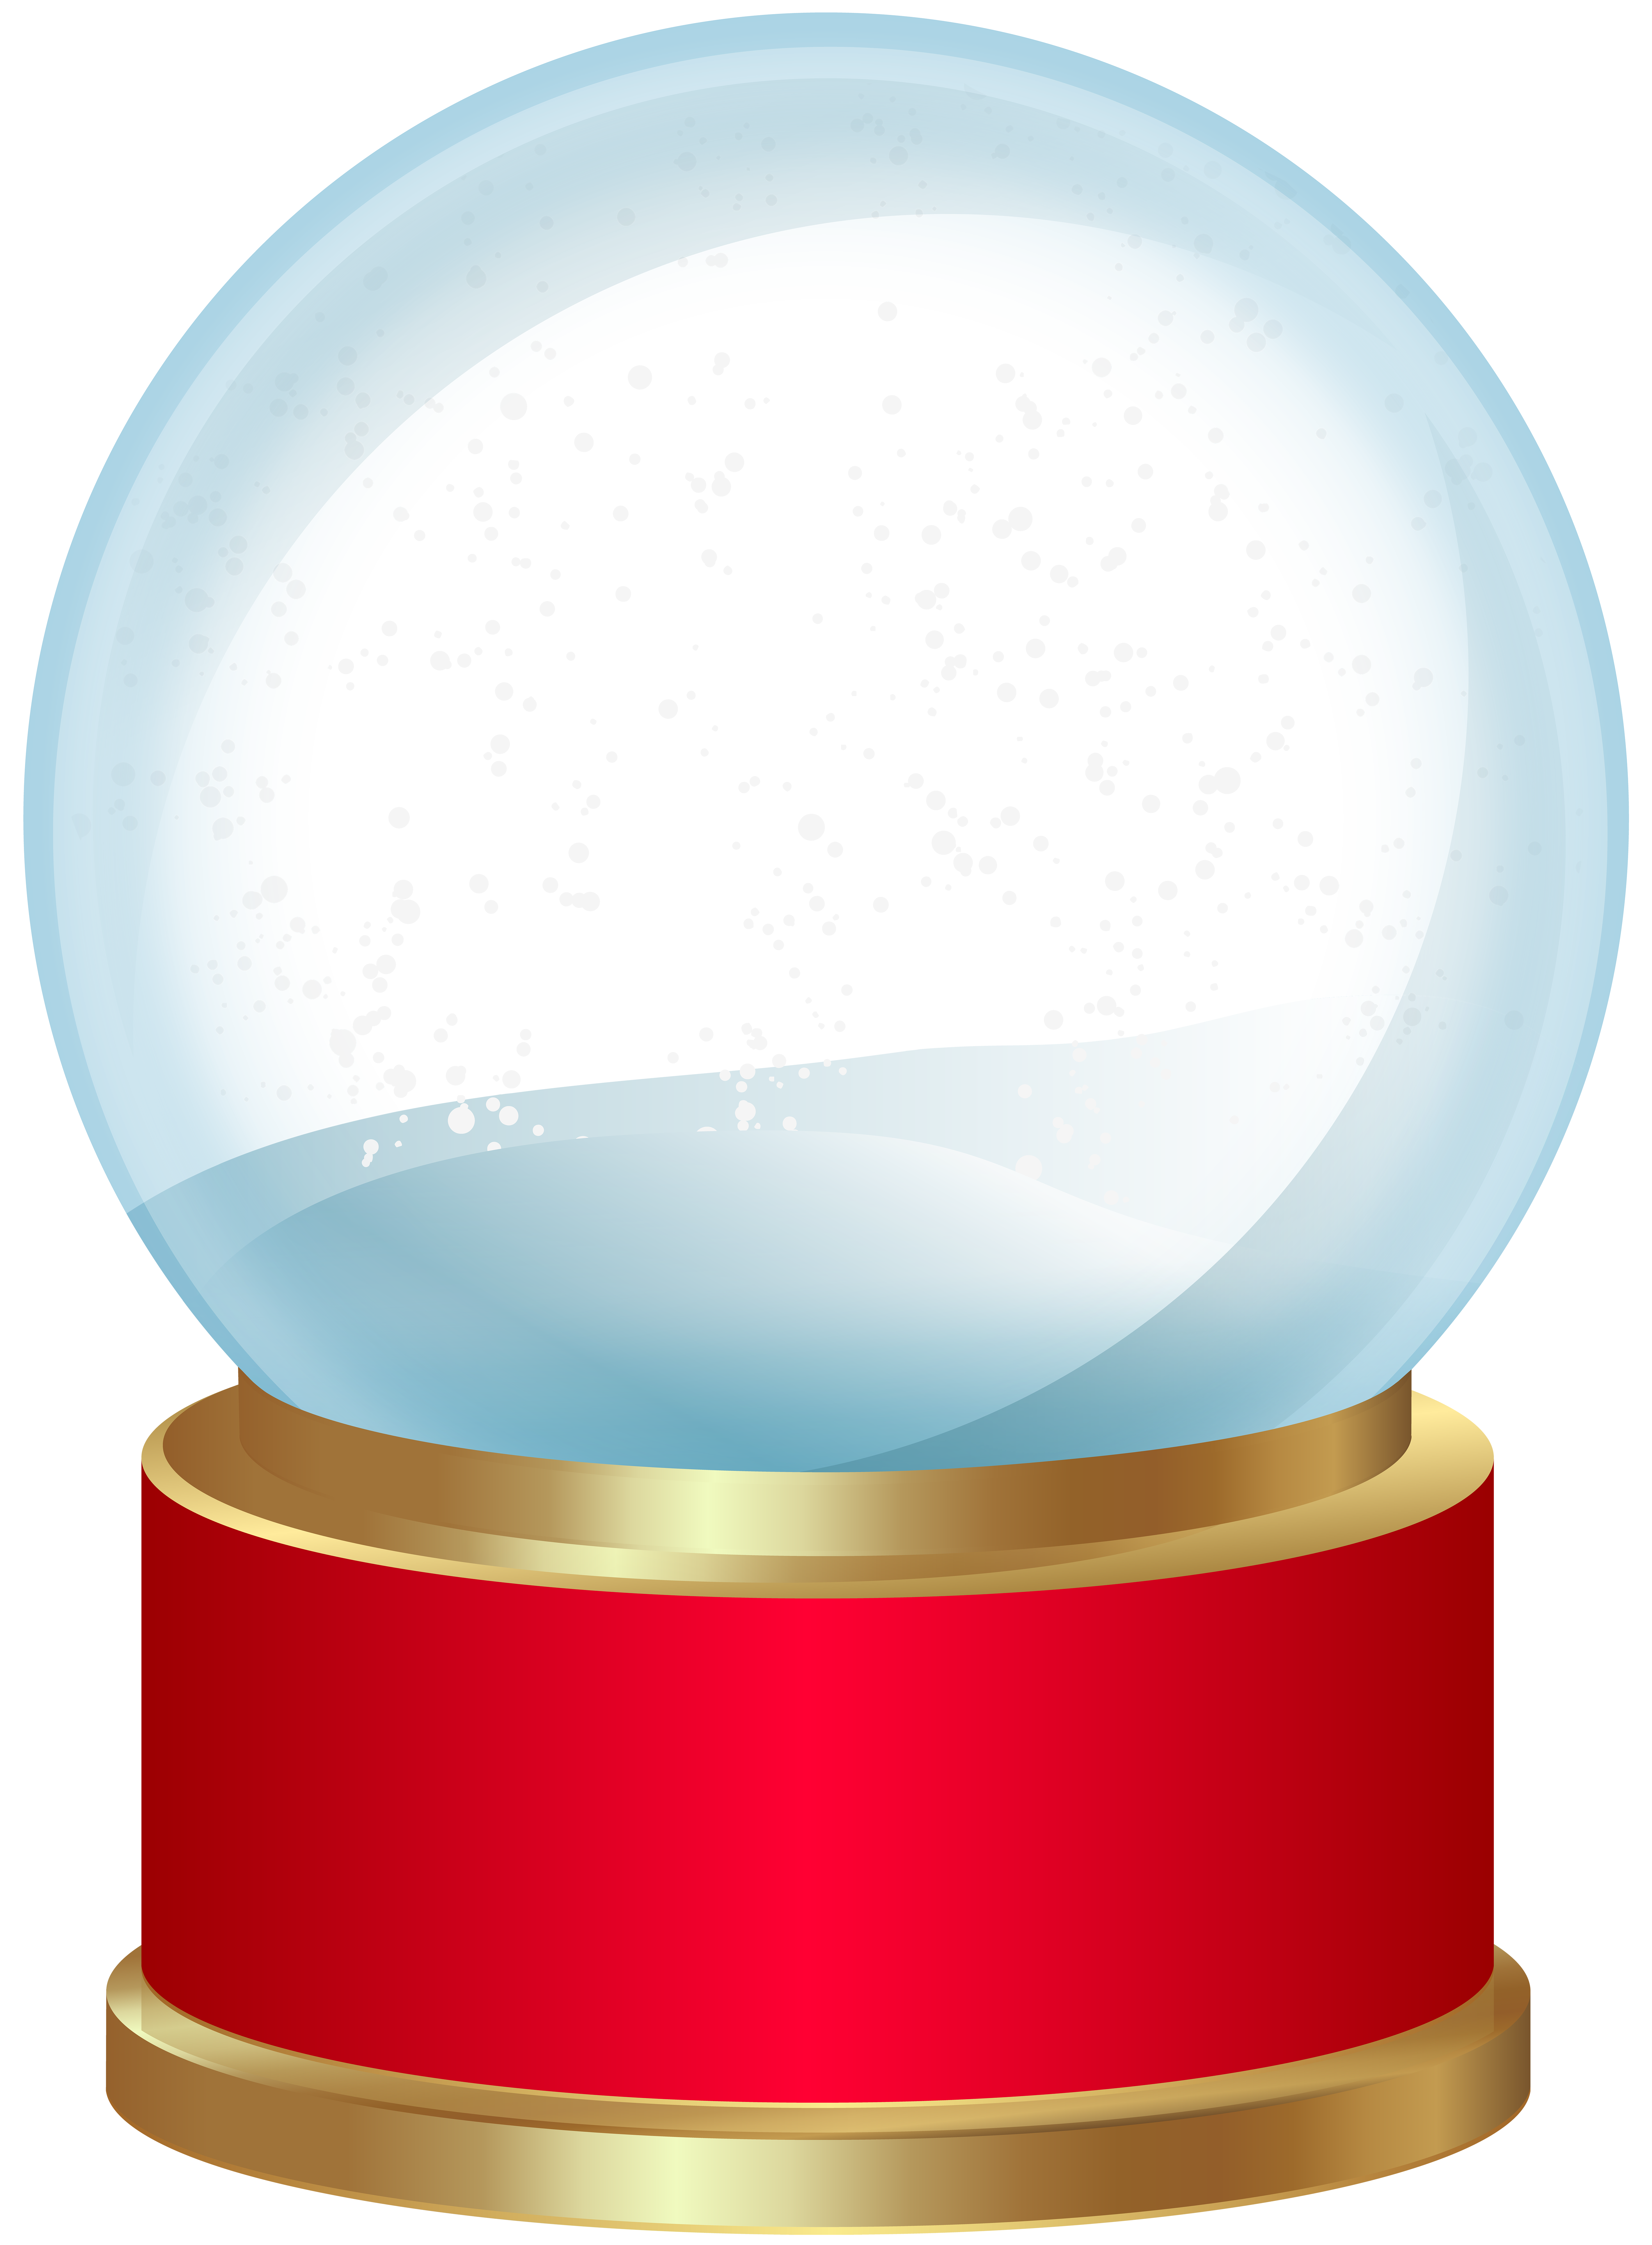 Clipart snow light snow. Christmas globe at getdrawings